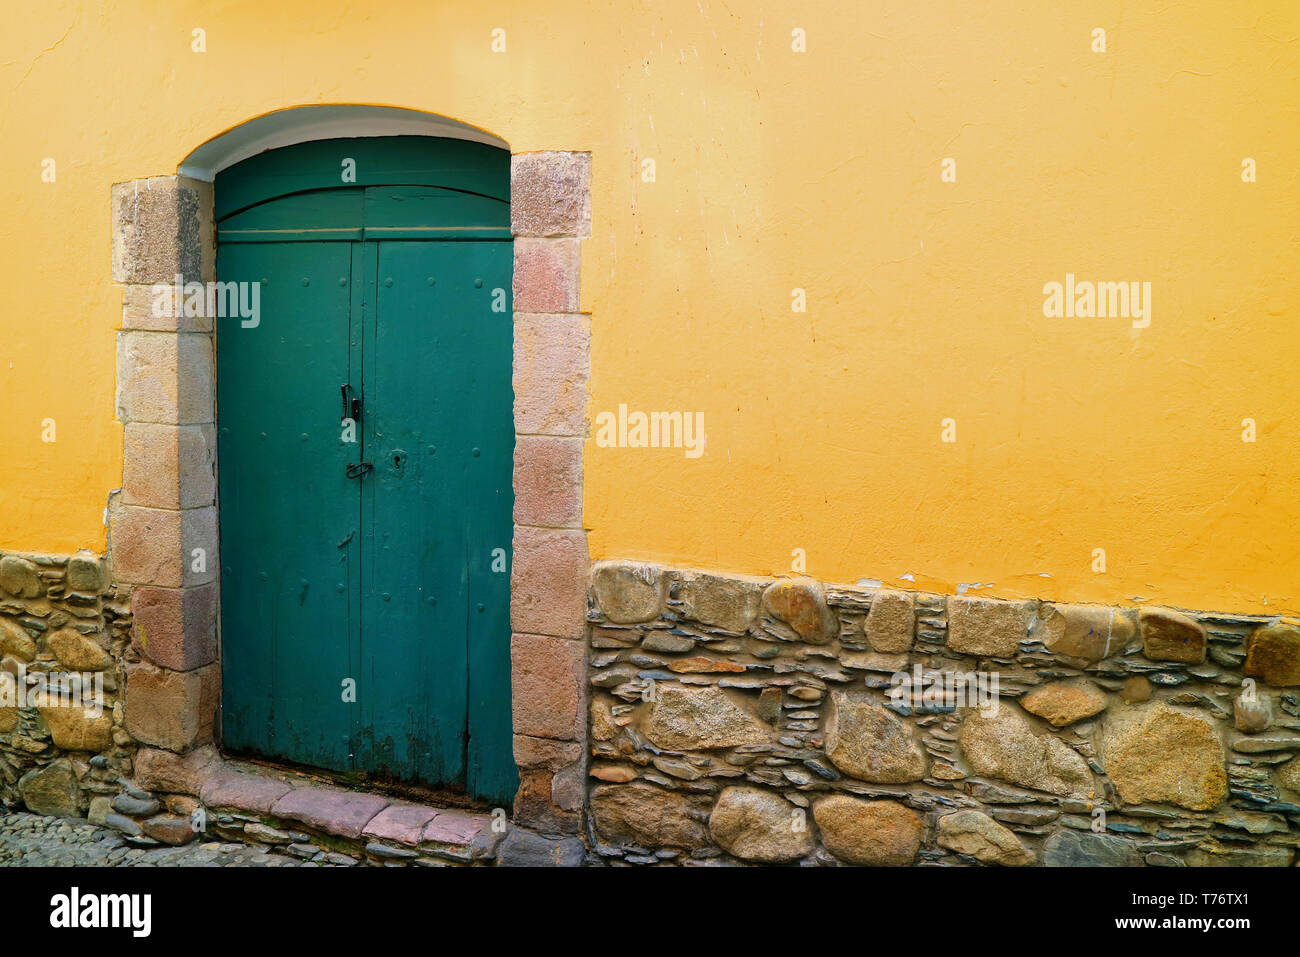 Green wooden door on the yellow wall of an old colonial building on Jaen street, La Paz, Bolivia - Stock Image